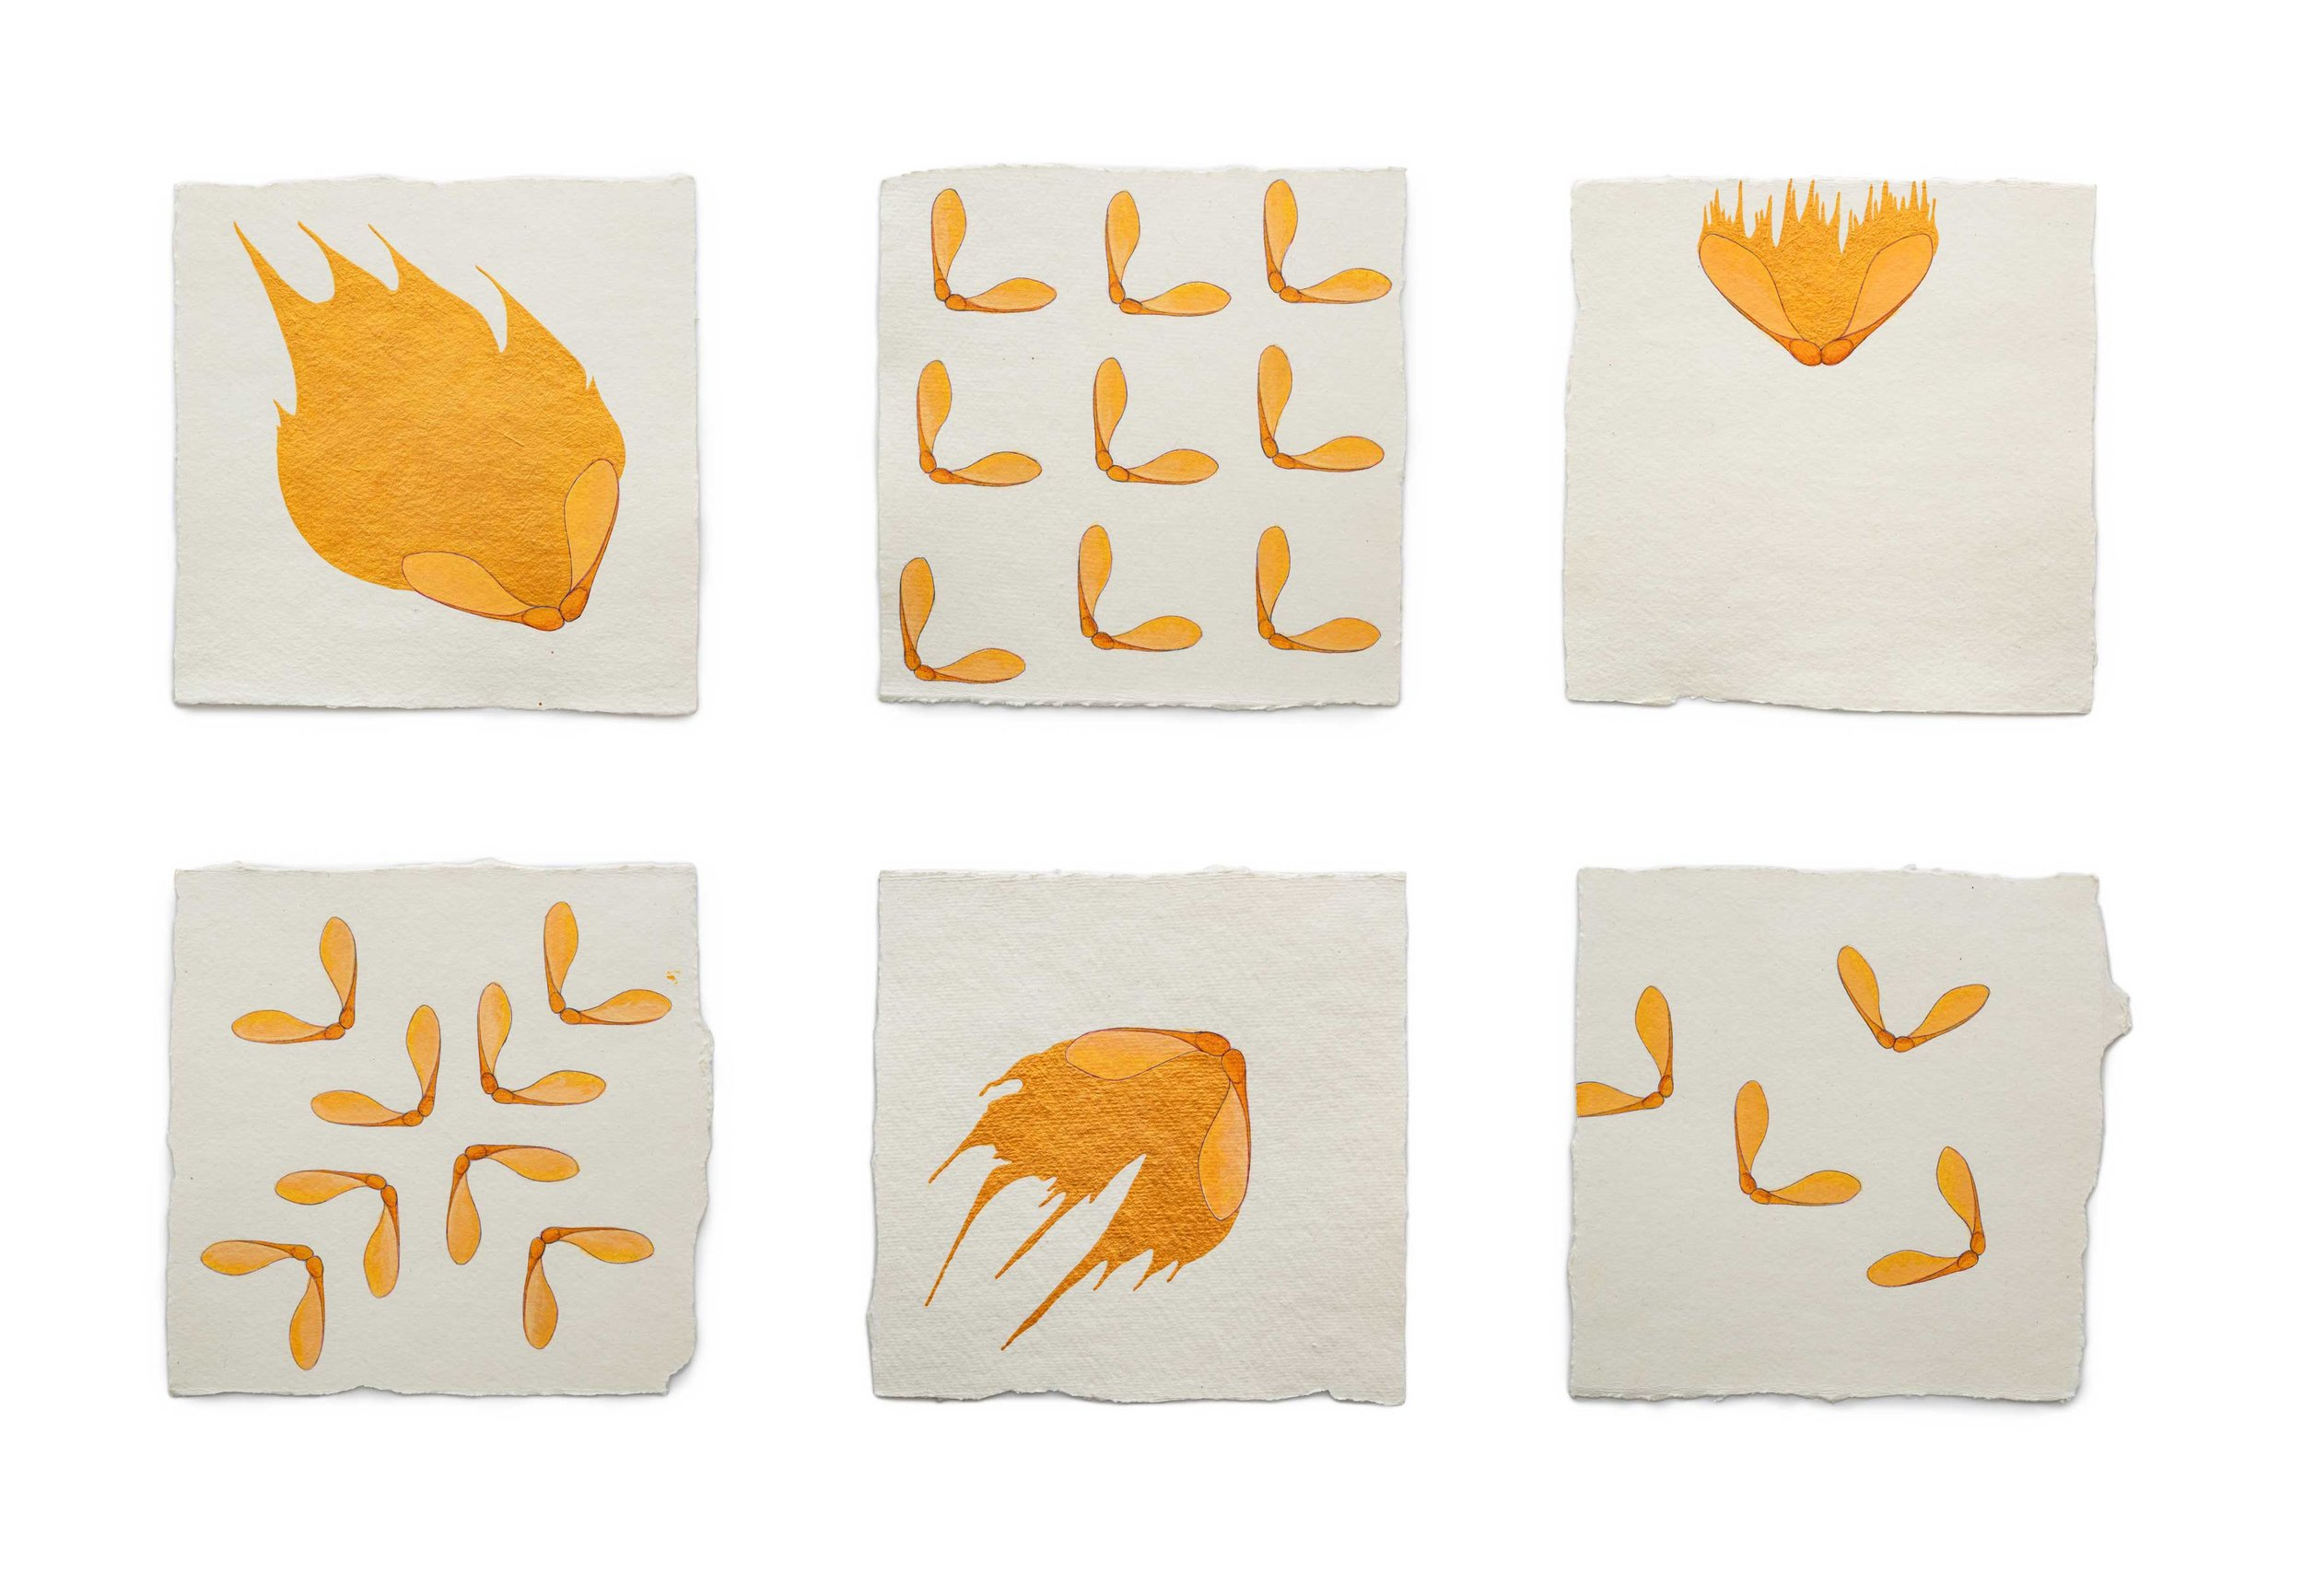 "Fire Diary (maple pods),  2019 Acrylic on paper, 6"" x 6"" each"